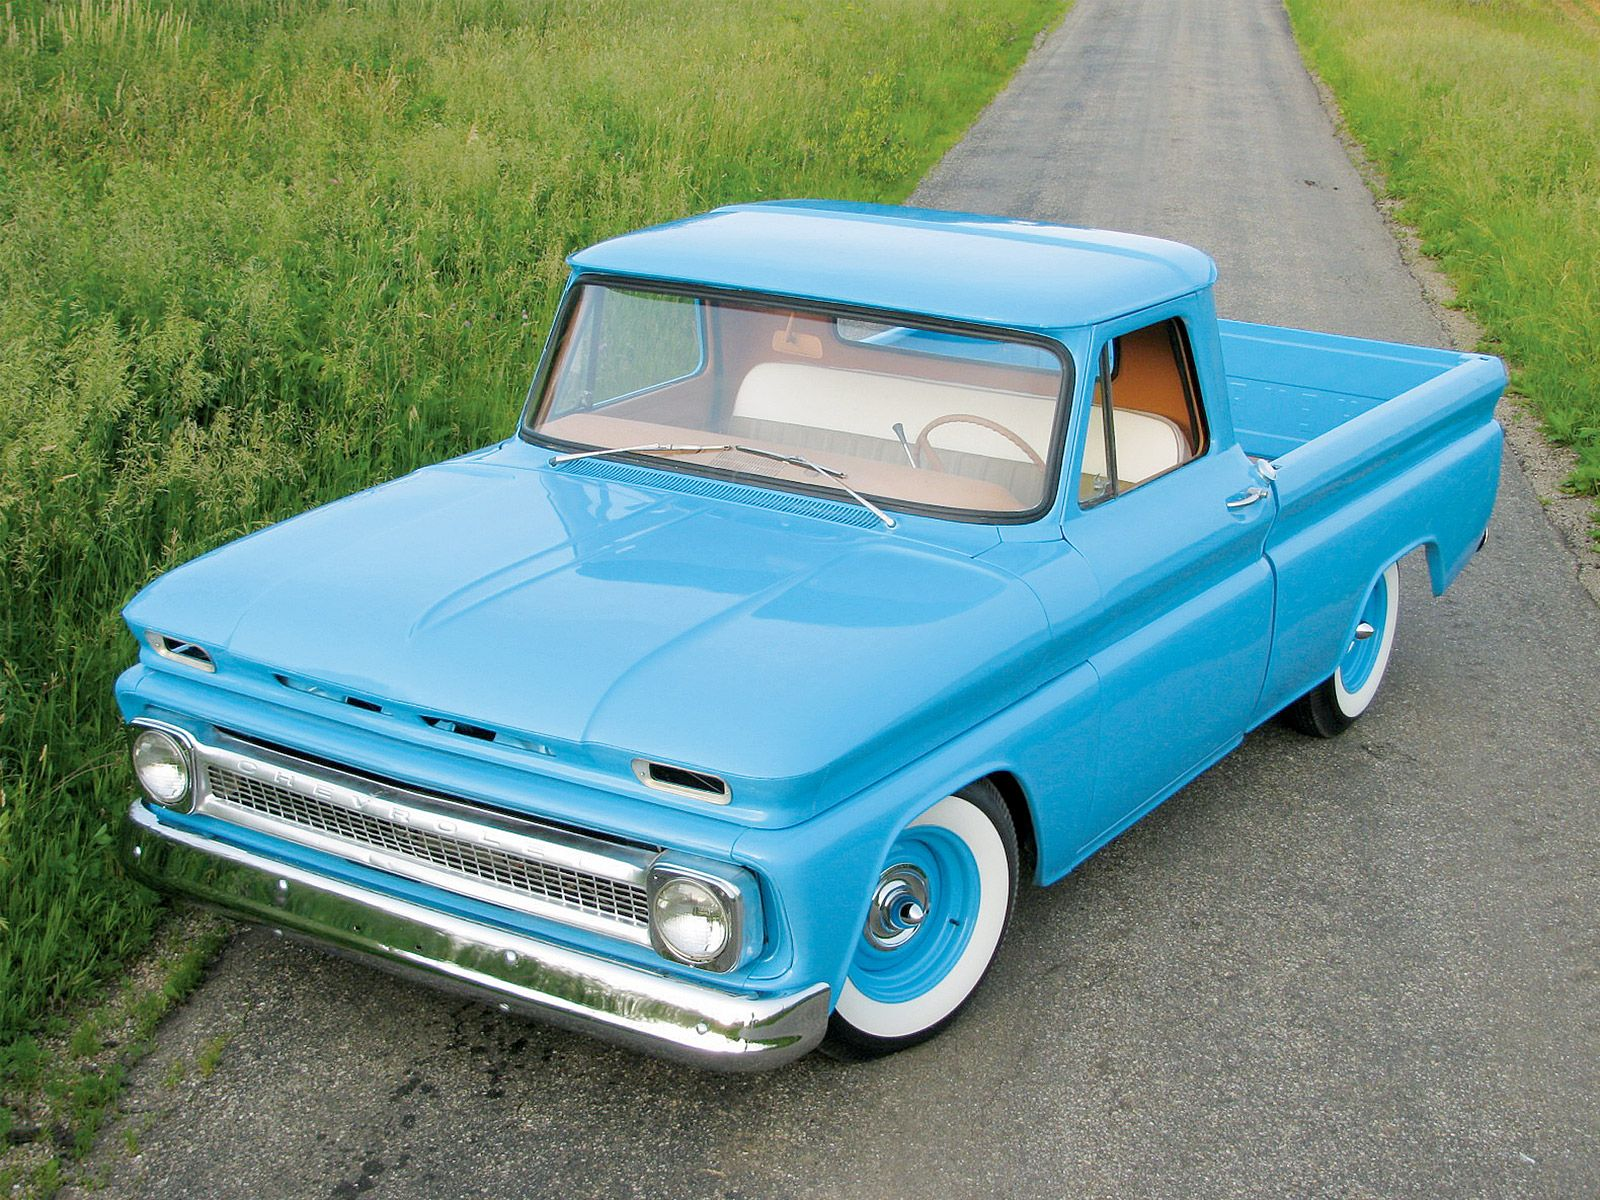 1966 chevy pickup truck custom baby blue paint job so dads style lol